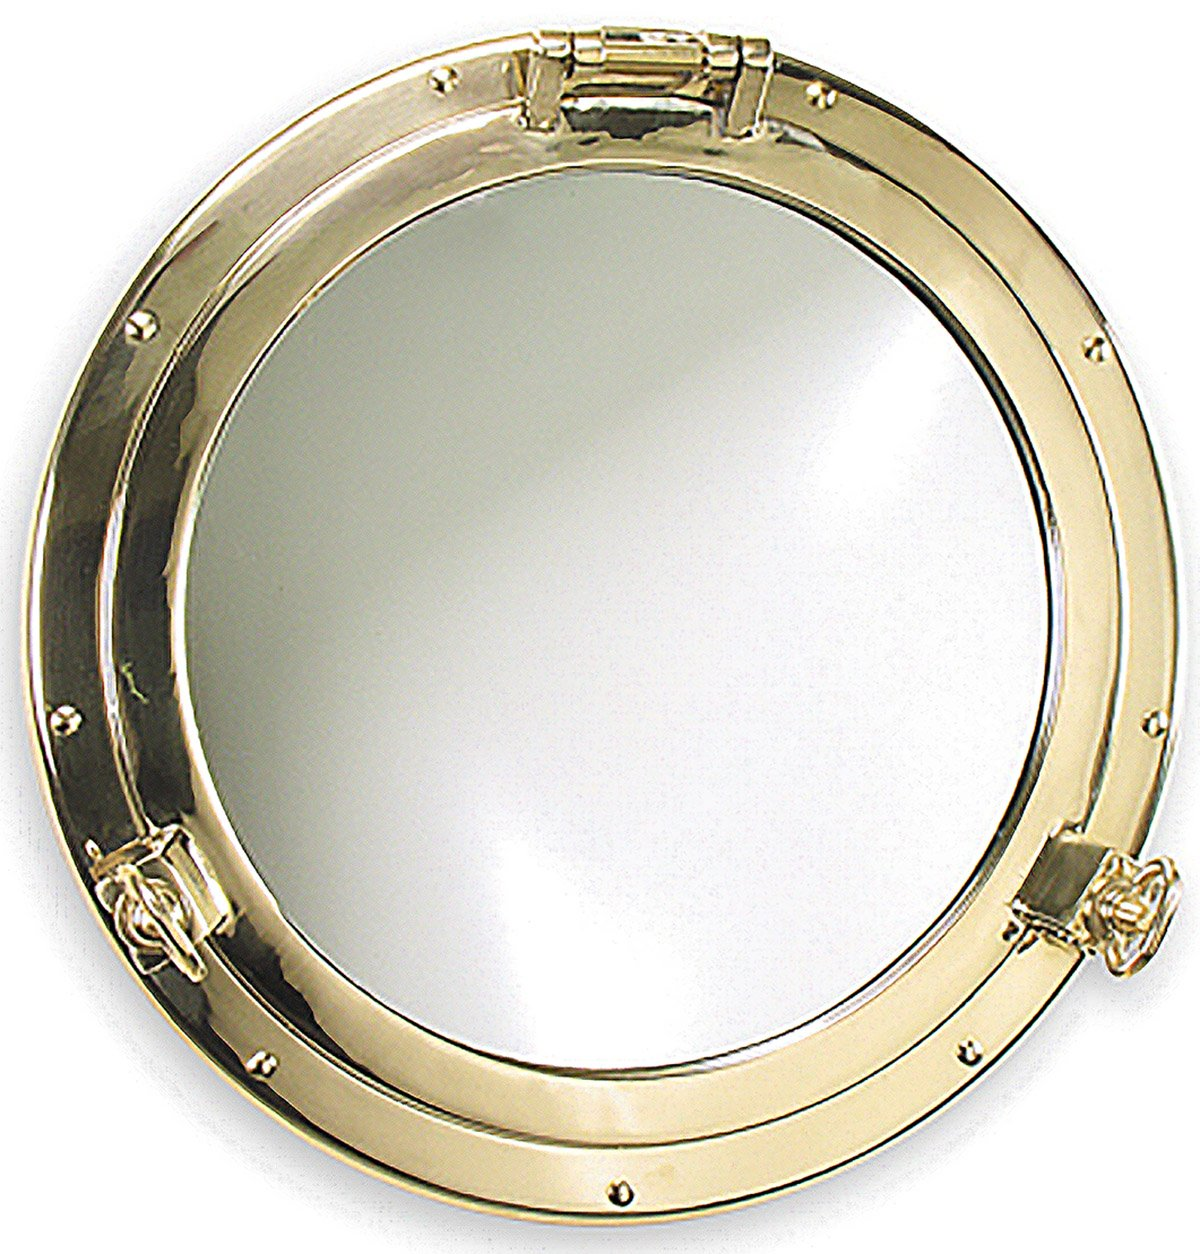 Heavy Duty Solid Brass Porthole Mirror by Shiplights for Interior/Exterior Use (18.5'', Unlacquered Polished Brass)